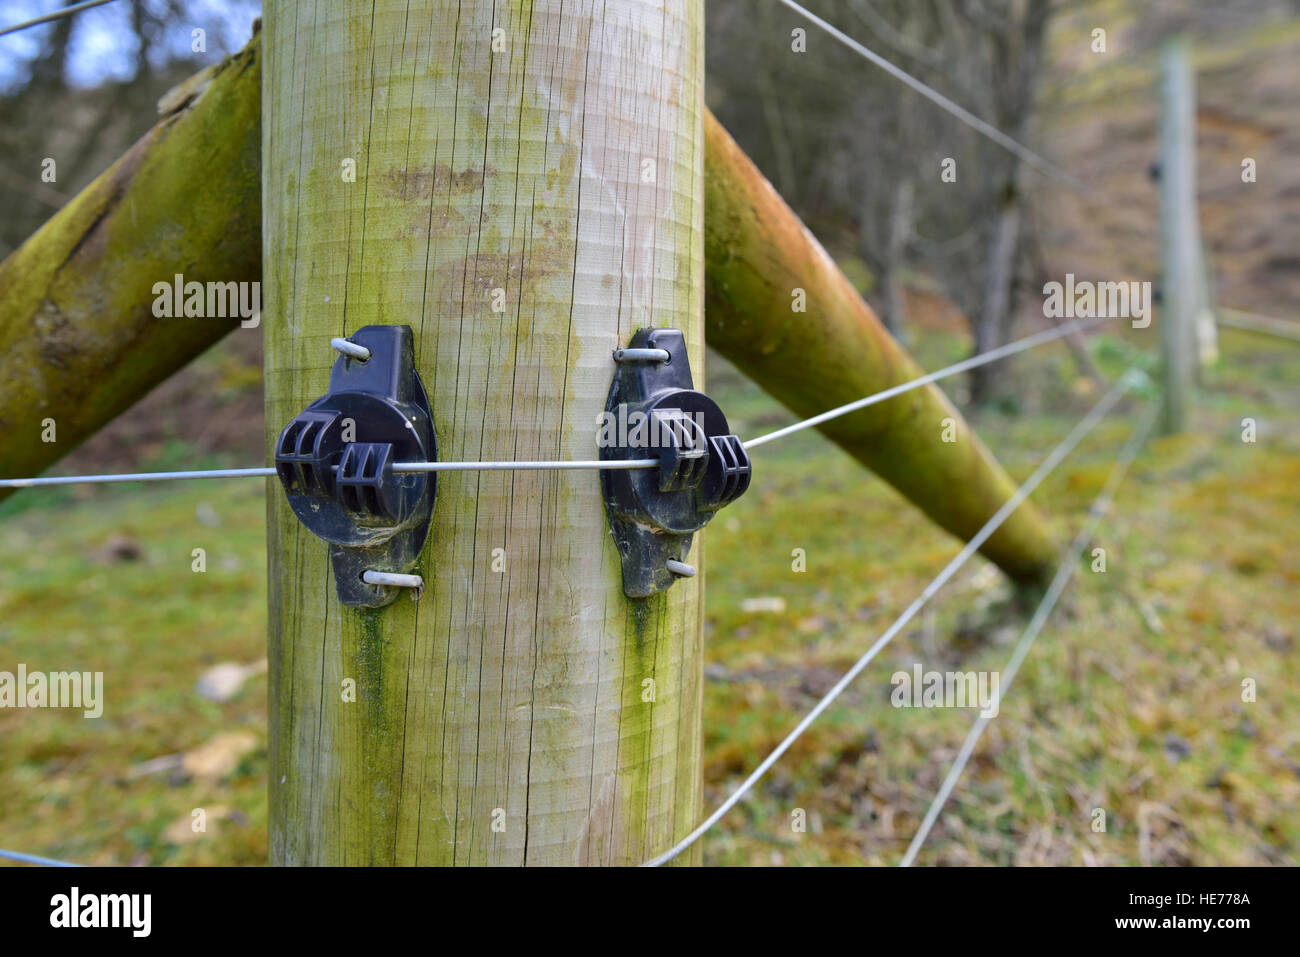 Wooden fence post stock photos wooden fence post stock images electric fence wire going over insulators on wooden fence post england stock image baanklon Image collections